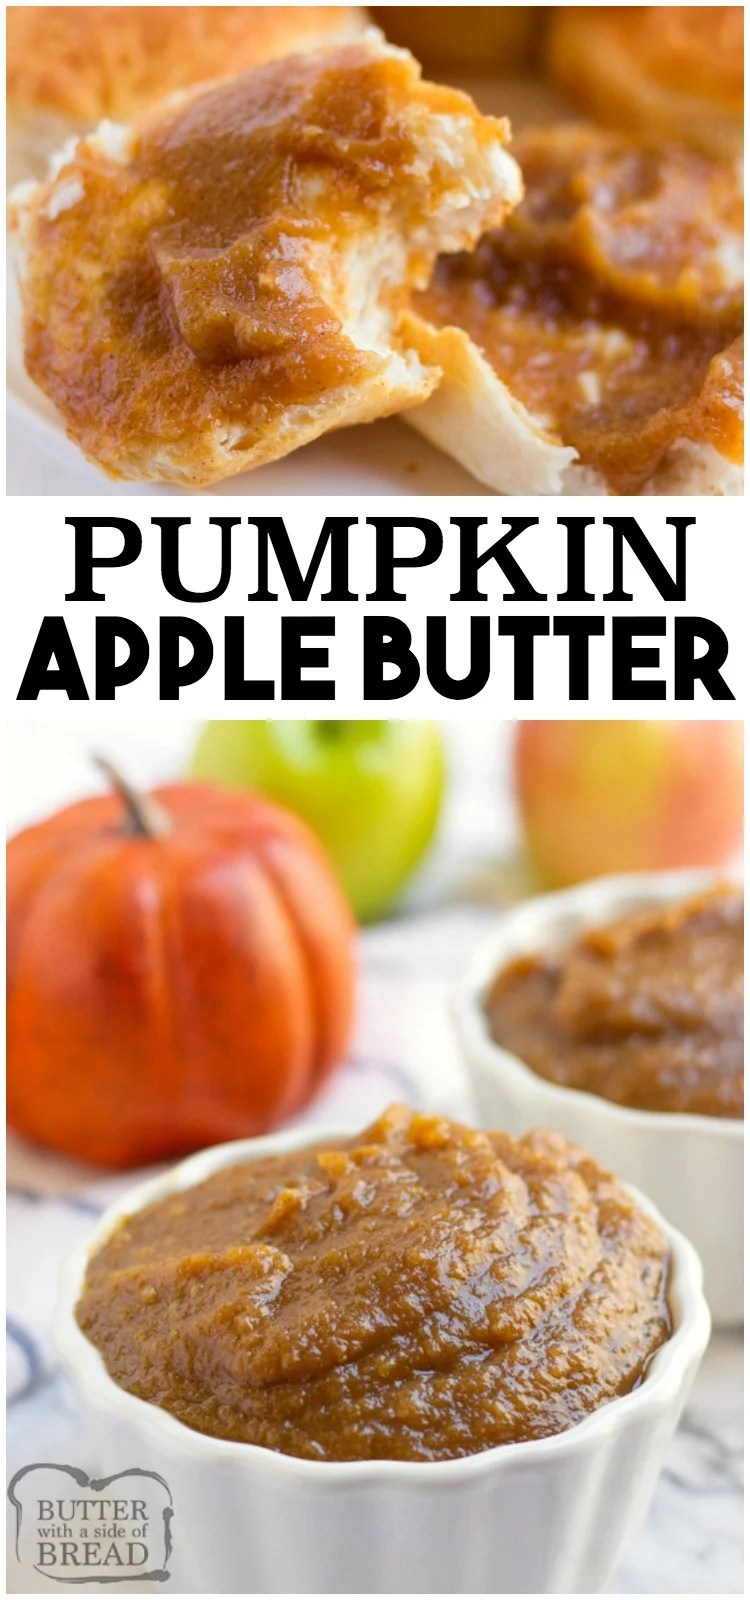 Crockpot Pumpkin Apple Butter recipe made with fresh apples, pumpkin puree and a blend of heavenly fall spices. Cooked slow to allow for a buttery smooth consistency and an incredible flavor!#apple #pumpkin #recipe #butter #crockpot #slowcooker recipe from BUTTER WITH A SIDE OF BREAD